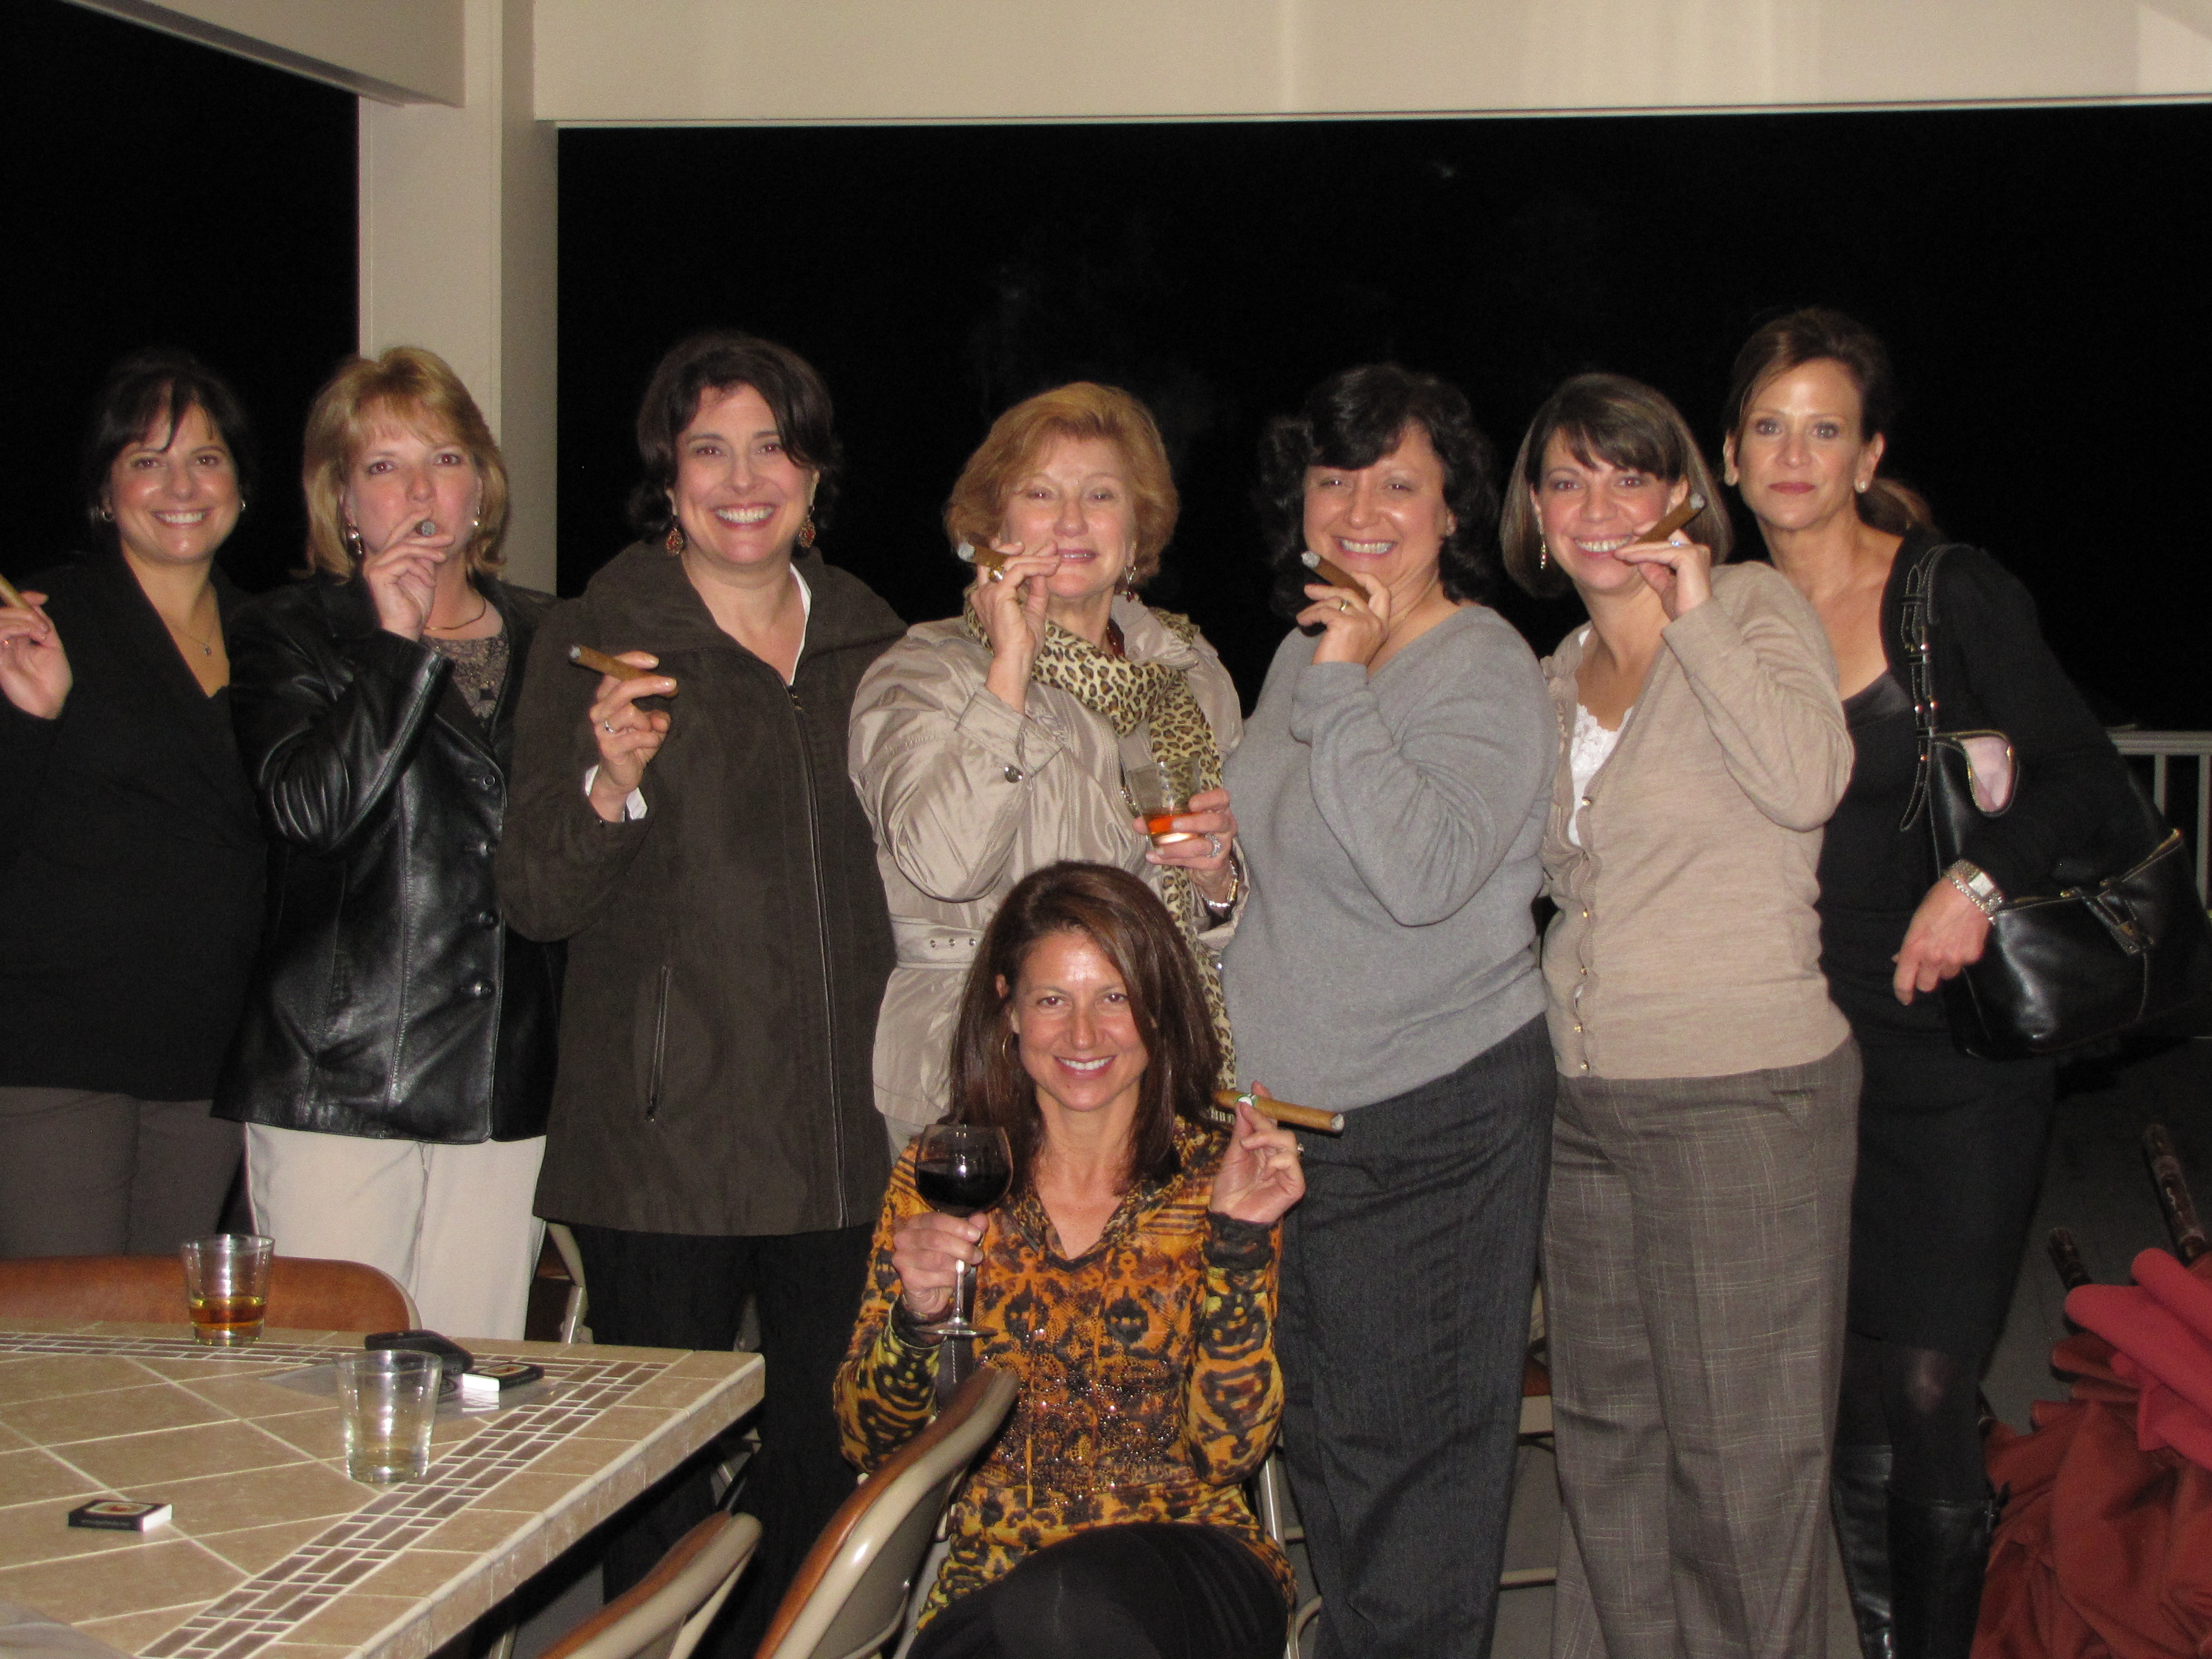 Ladies Night with Cigars